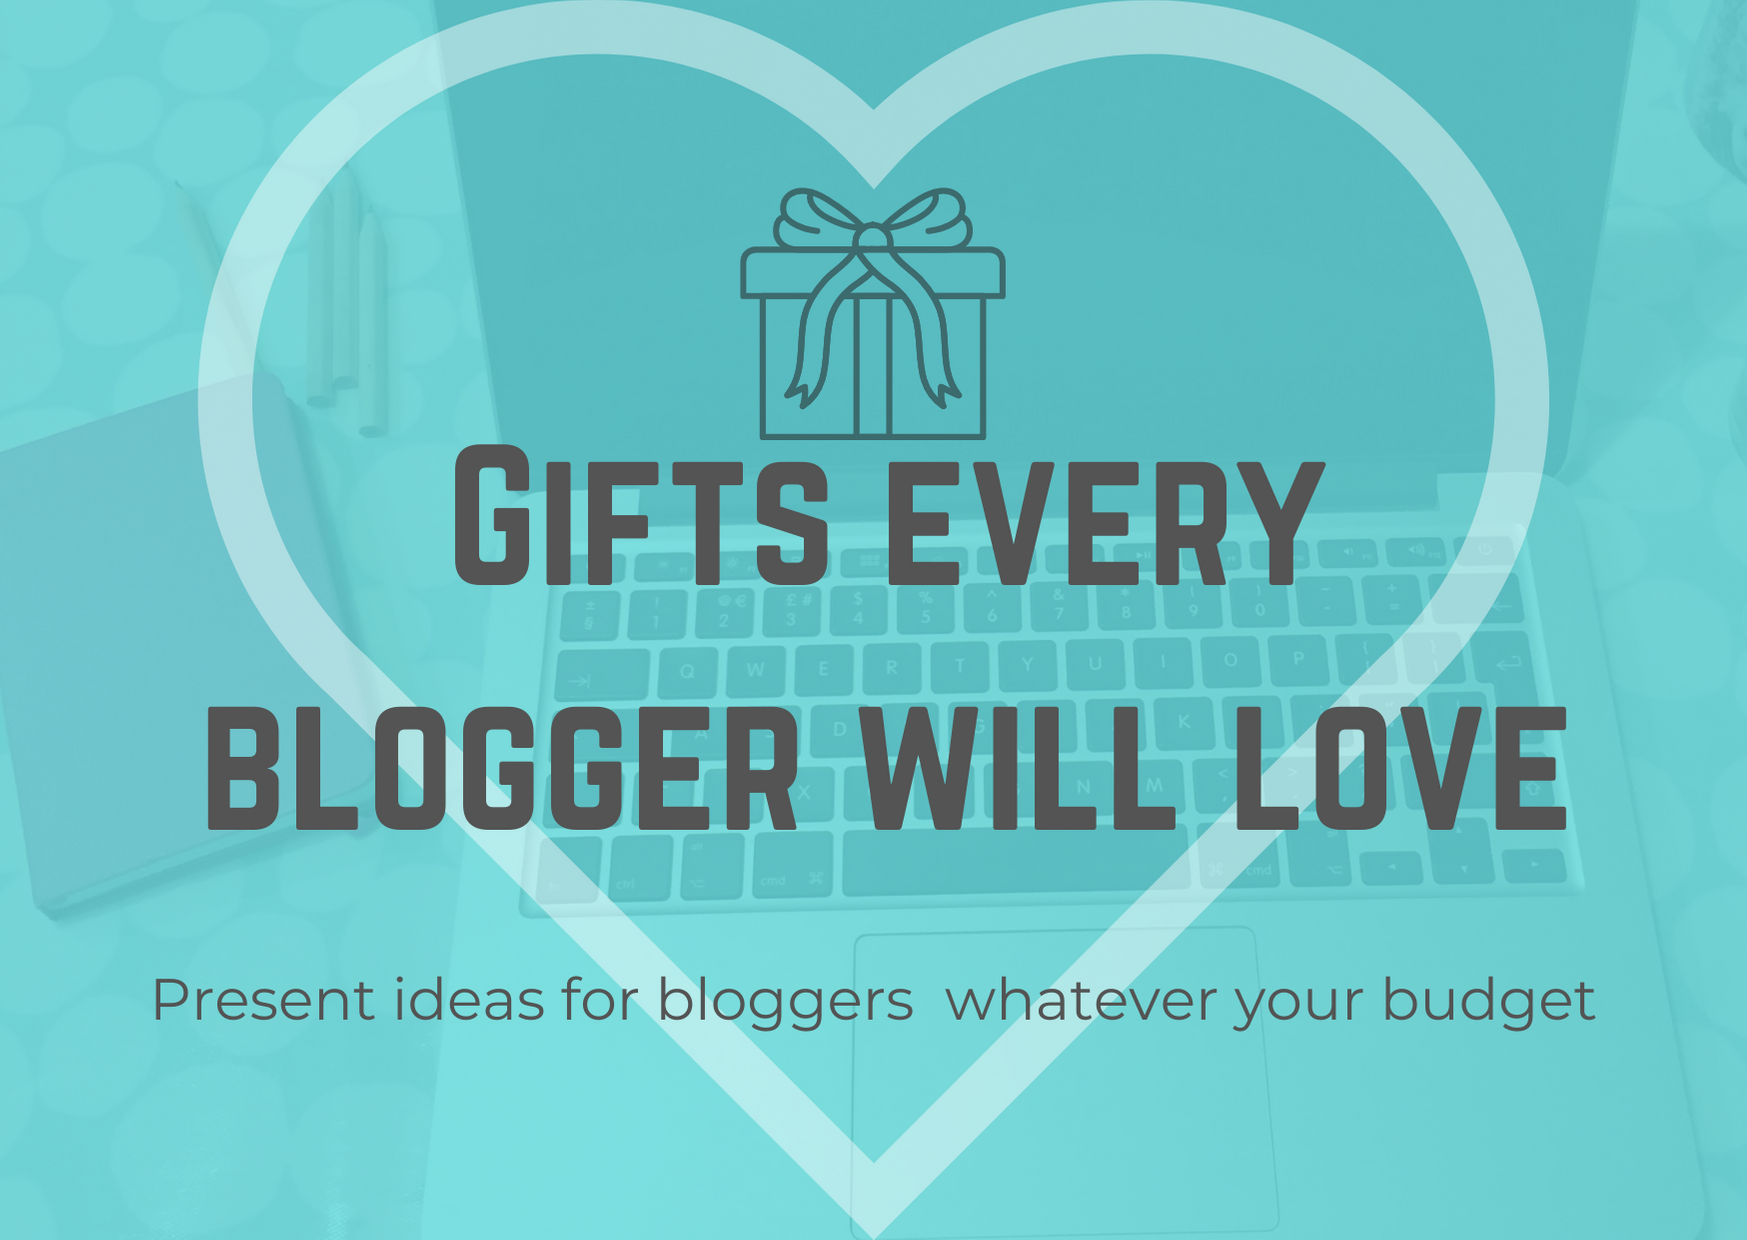 Gifts every blogger will love. Present ideas for bloggers whatever your budget over a faded image of a laptop and notepad